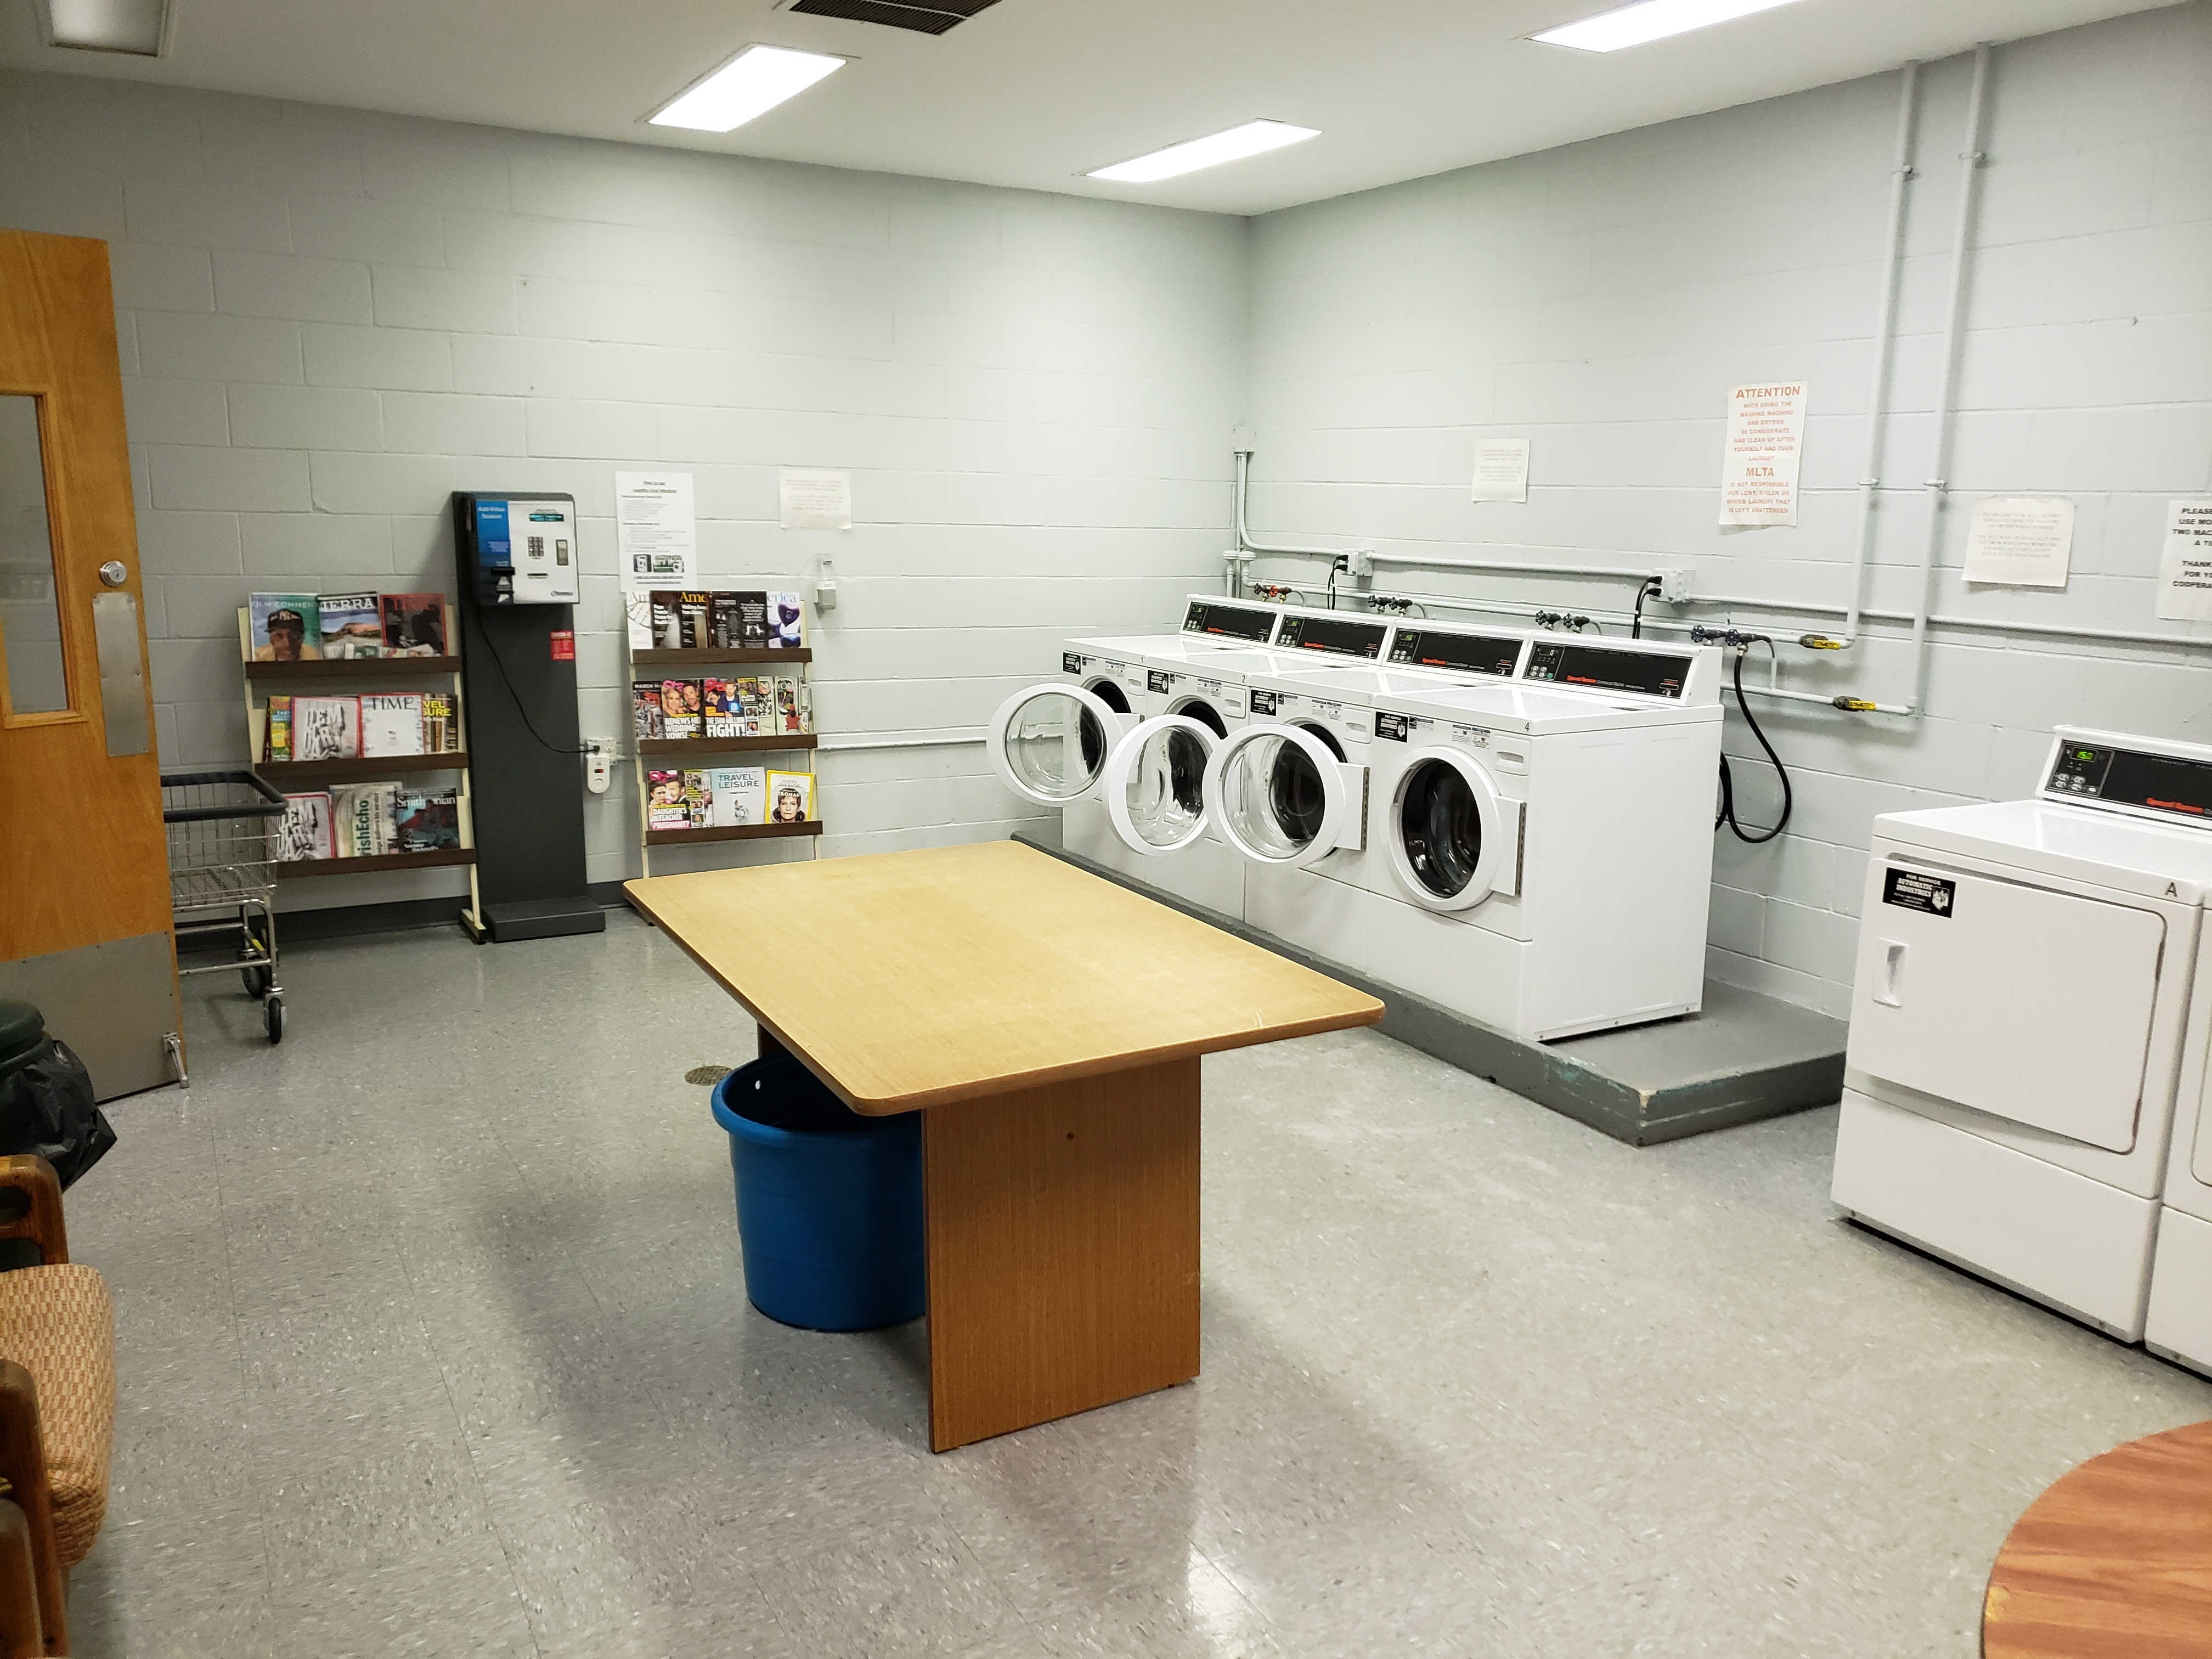 Laundry Room in Community Building